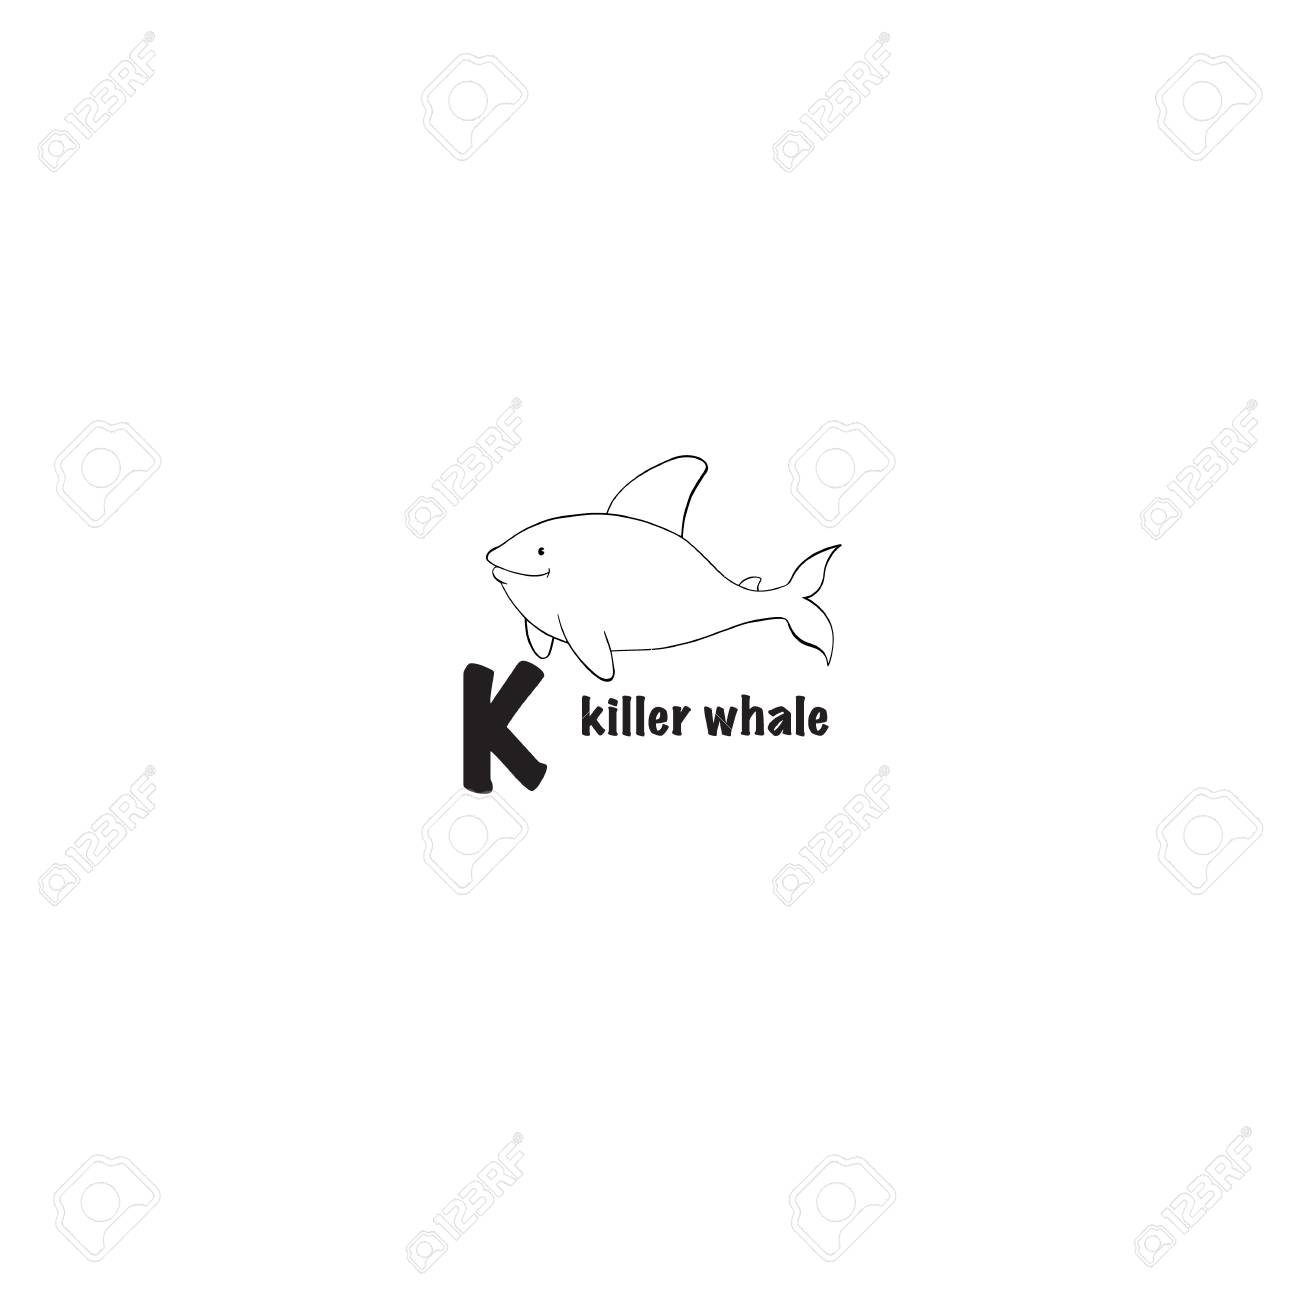 Killer Whale Coloring Page Isolated On White Background Royalty Free ...